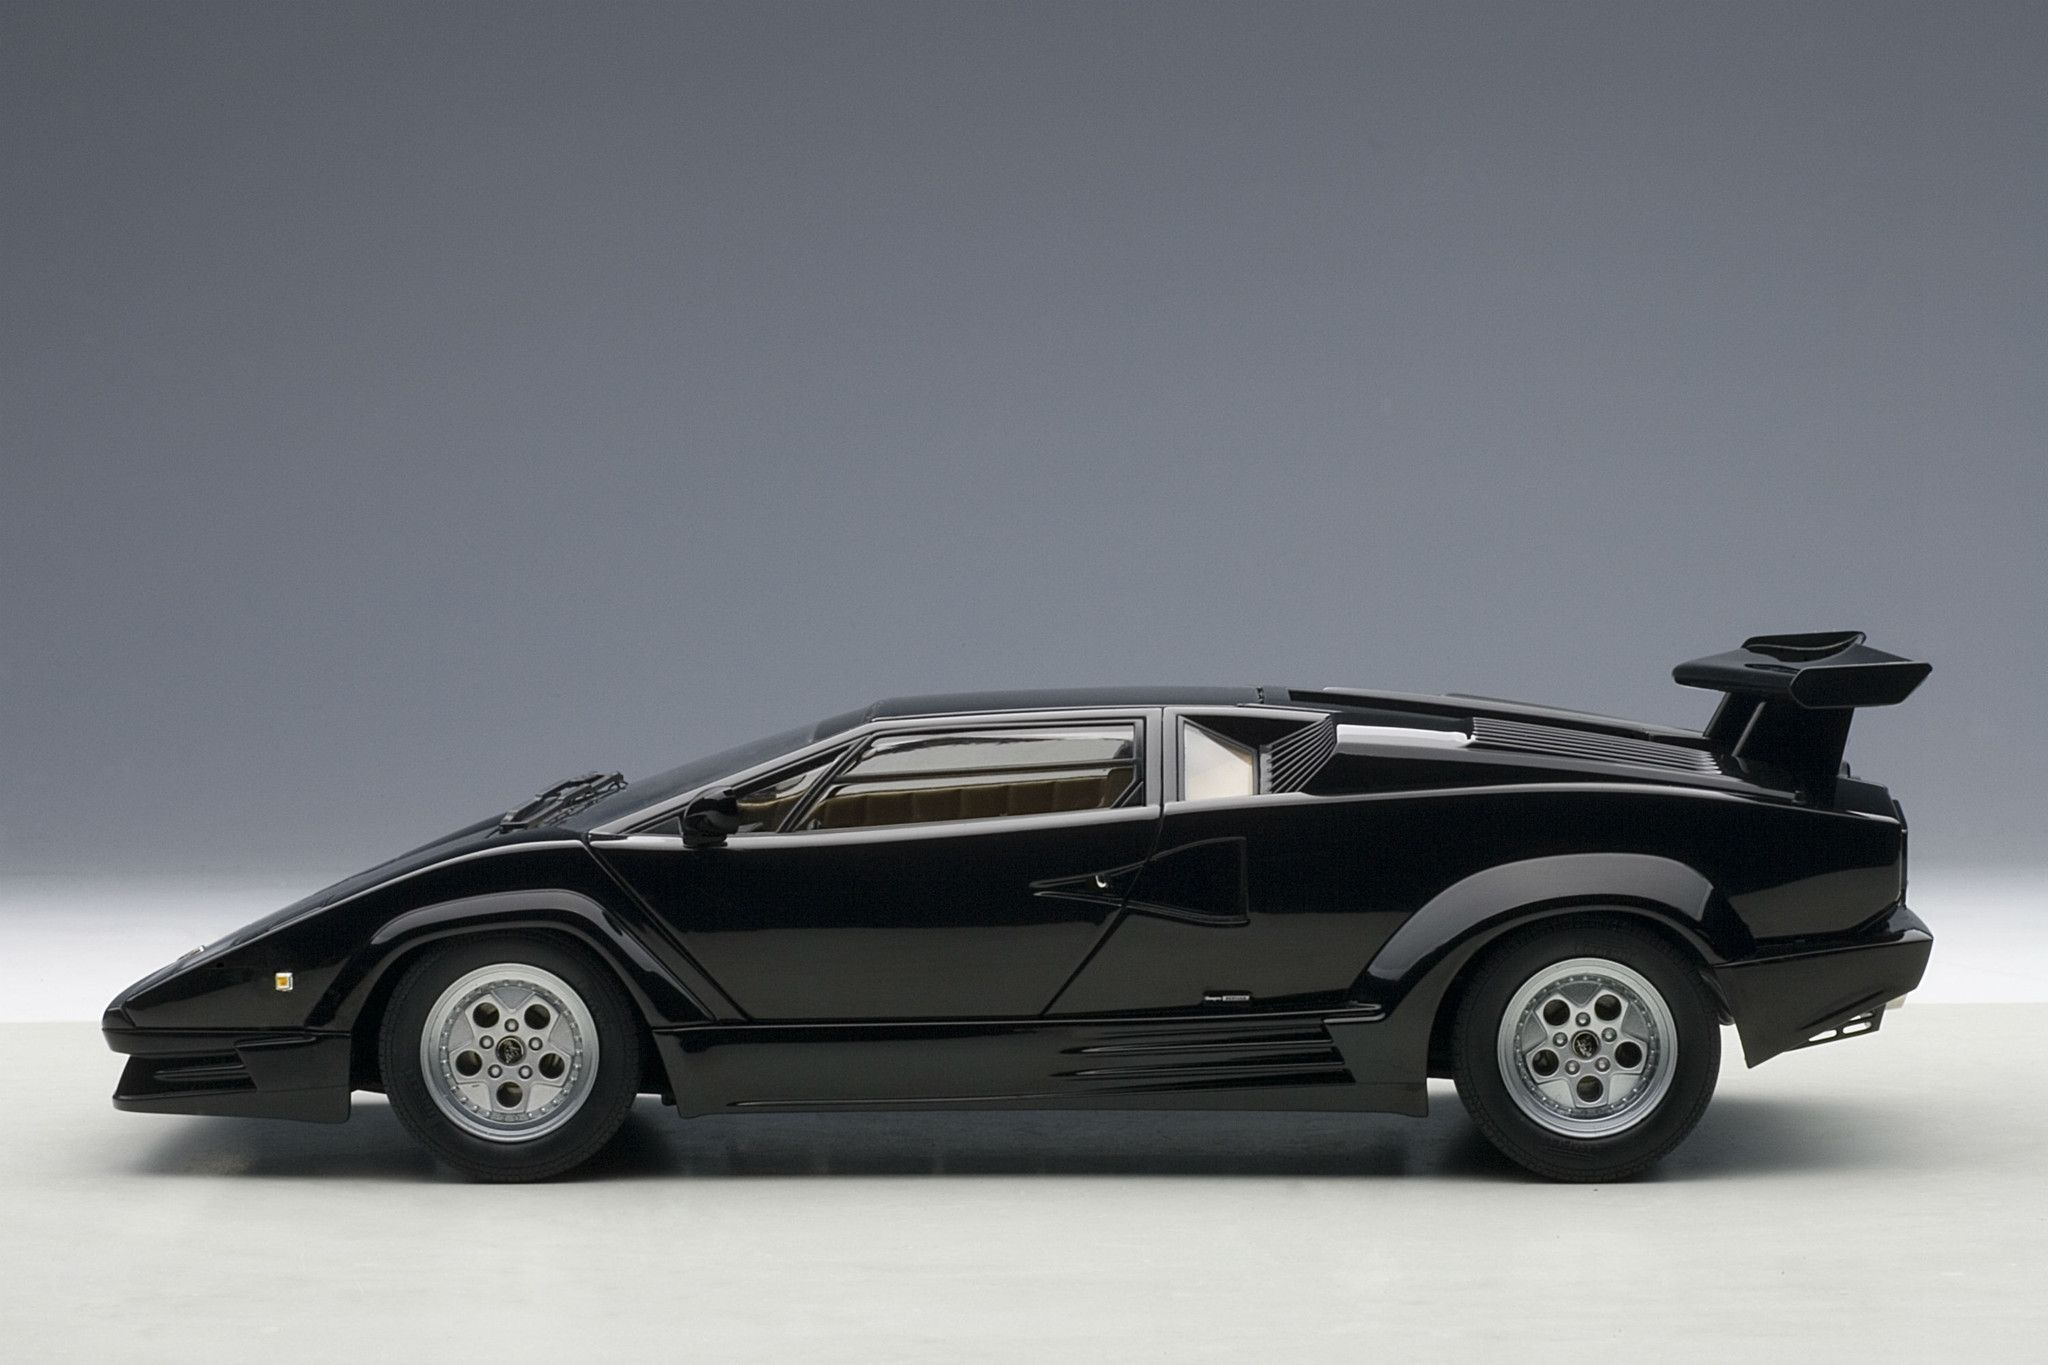 lamborghini countach 25th anniversary 1 18 scale diecast model car produc. Black Bedroom Furniture Sets. Home Design Ideas